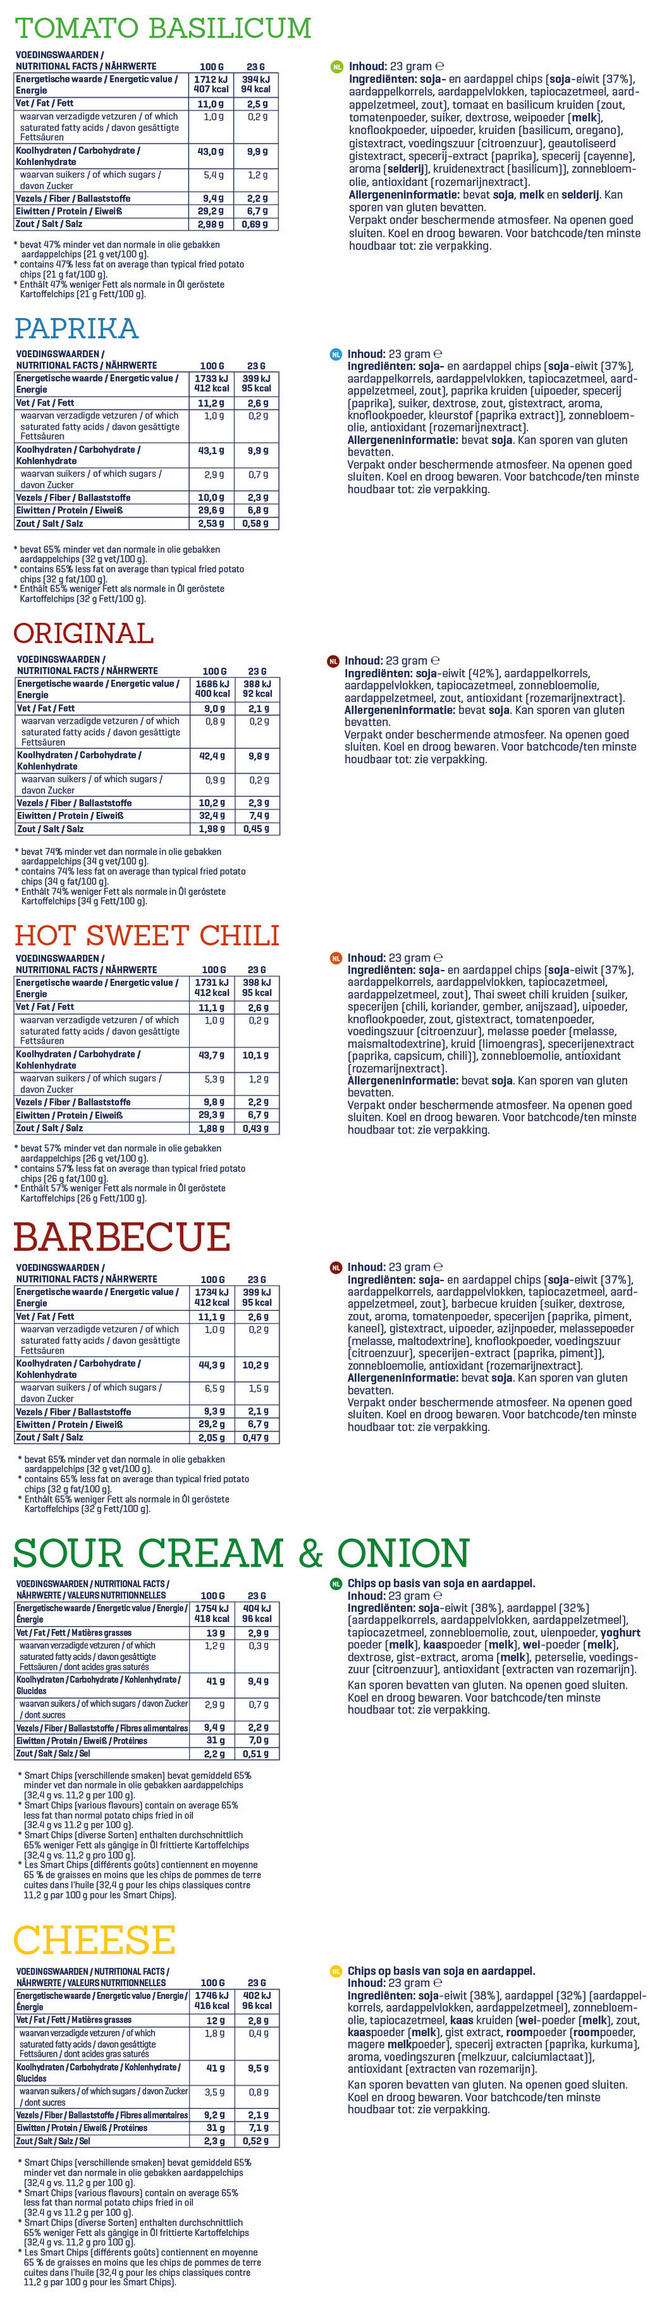 Smart Chips Nutritional Information 1